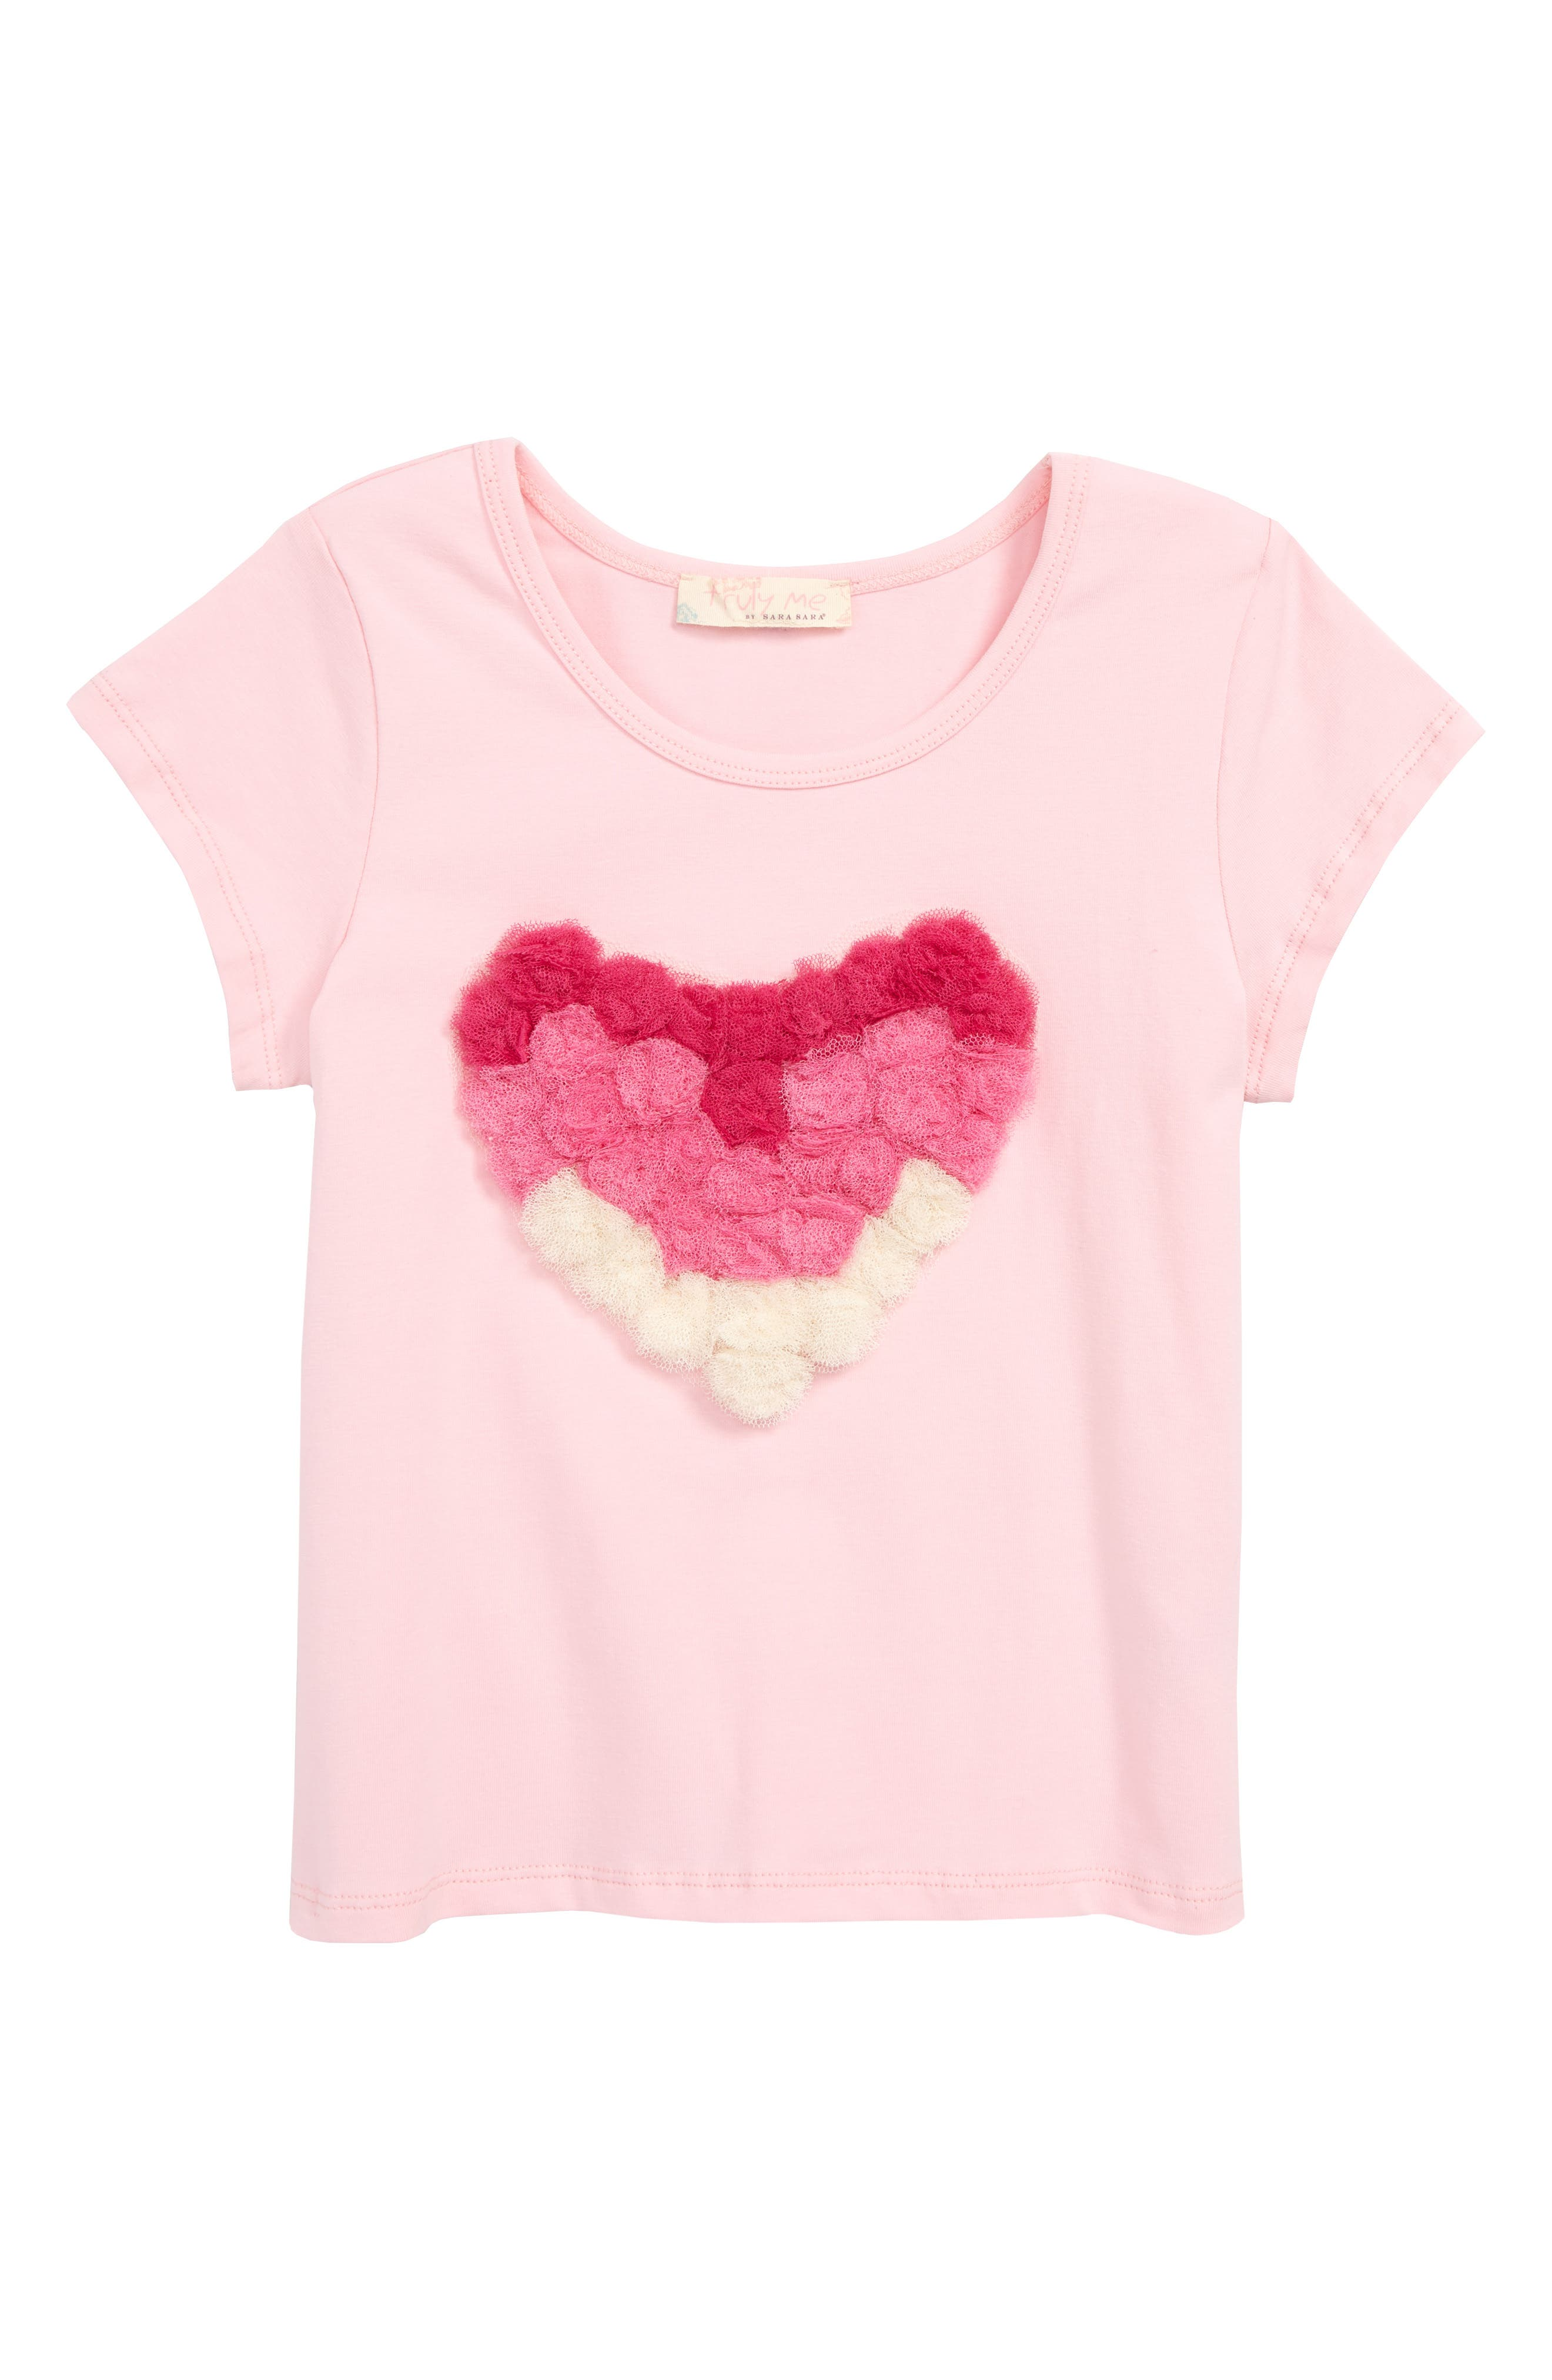 TRULY ME Heart Appliqué Tee, Main, color, LIGHT PINK